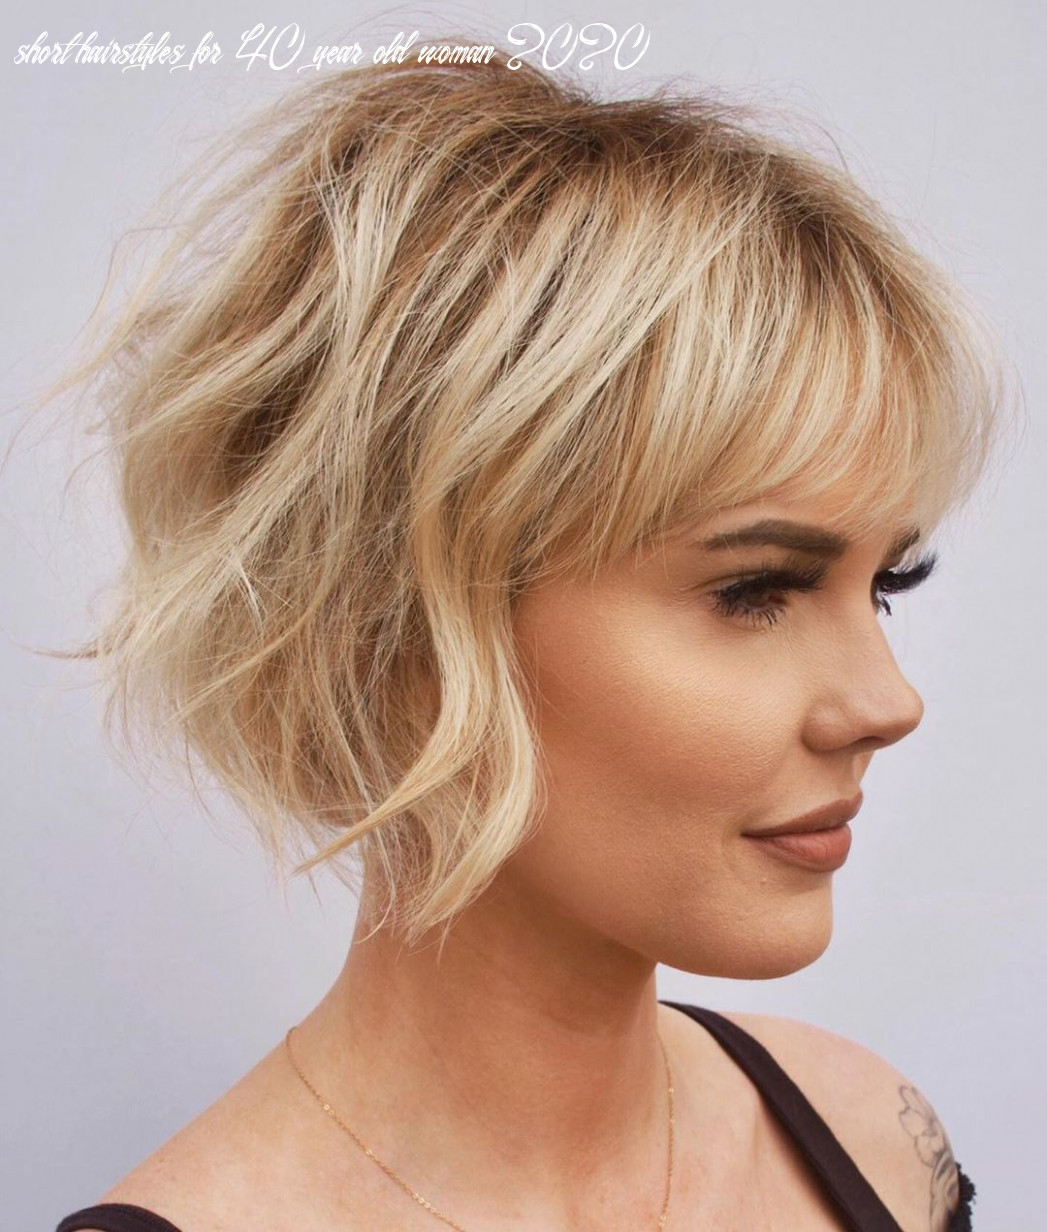 9 newest haircut ideas and haircut trends for 9 hair adviser short hairstyles for 40 year old woman 2020